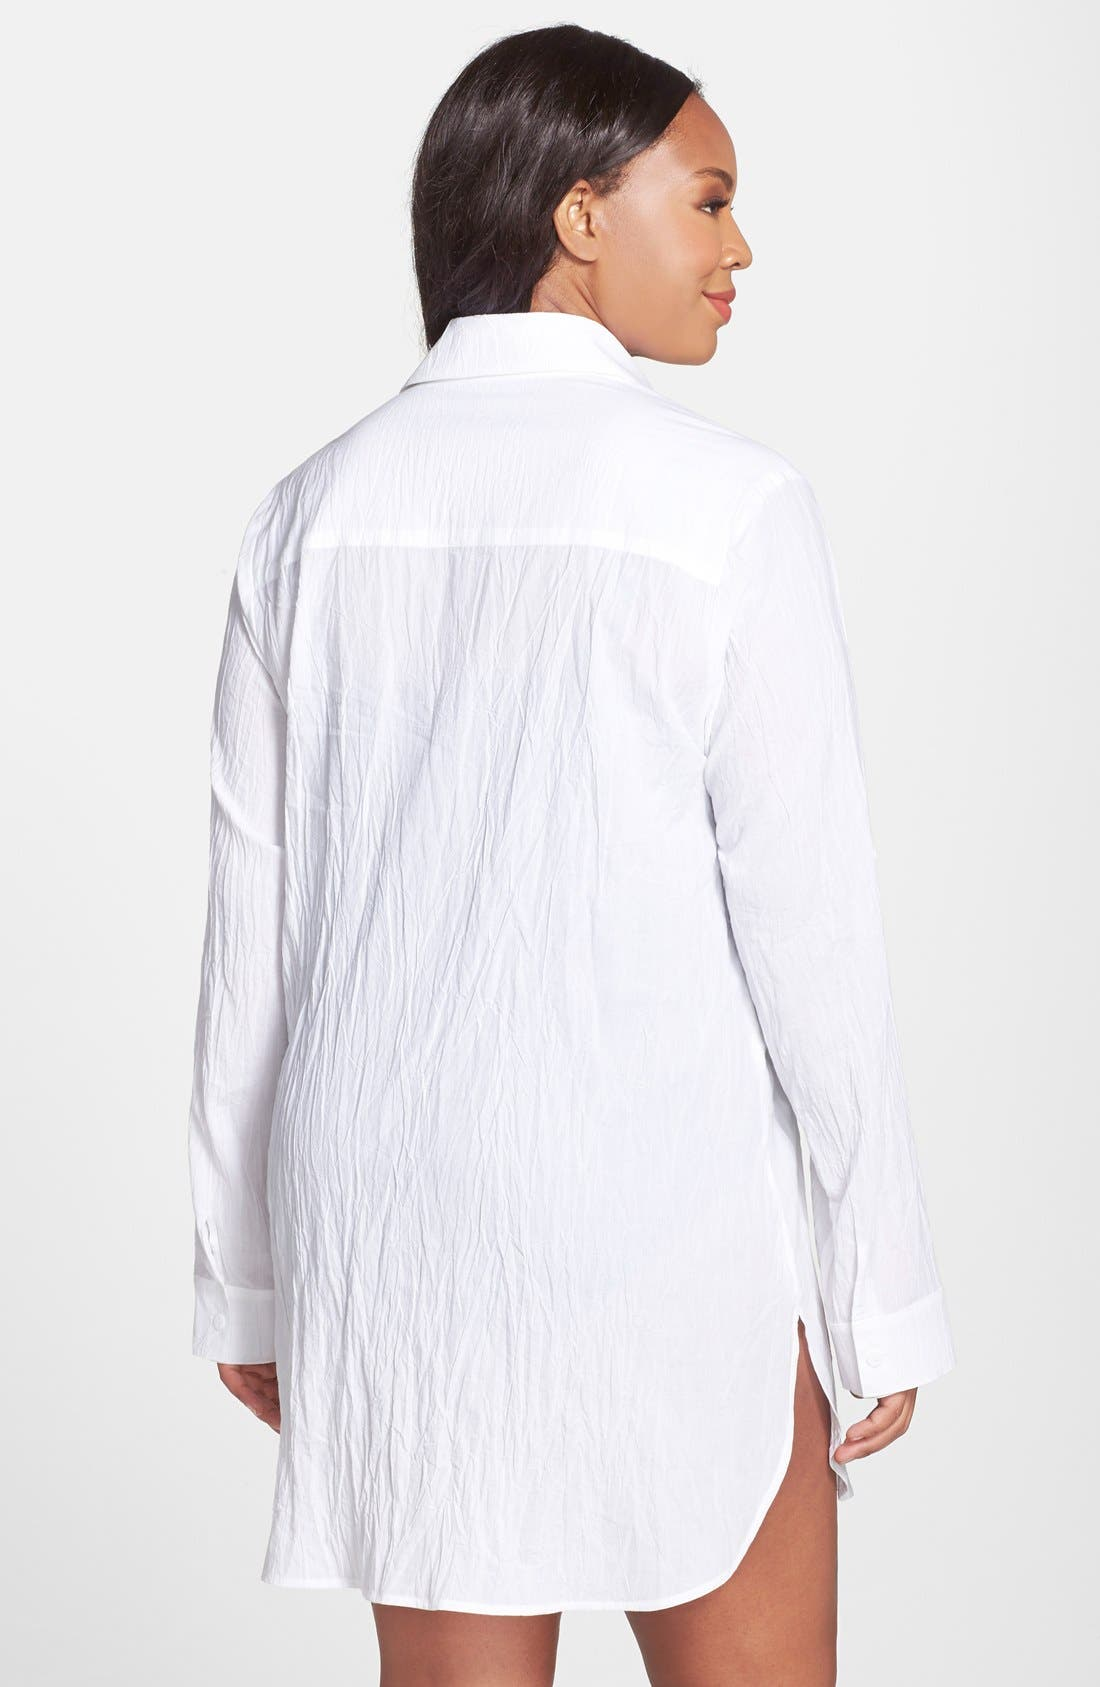 TOMMY BAHAMA,                             Boyfriend Shirt Cover-Up,                             Alternate thumbnail 8, color,                             WHITE